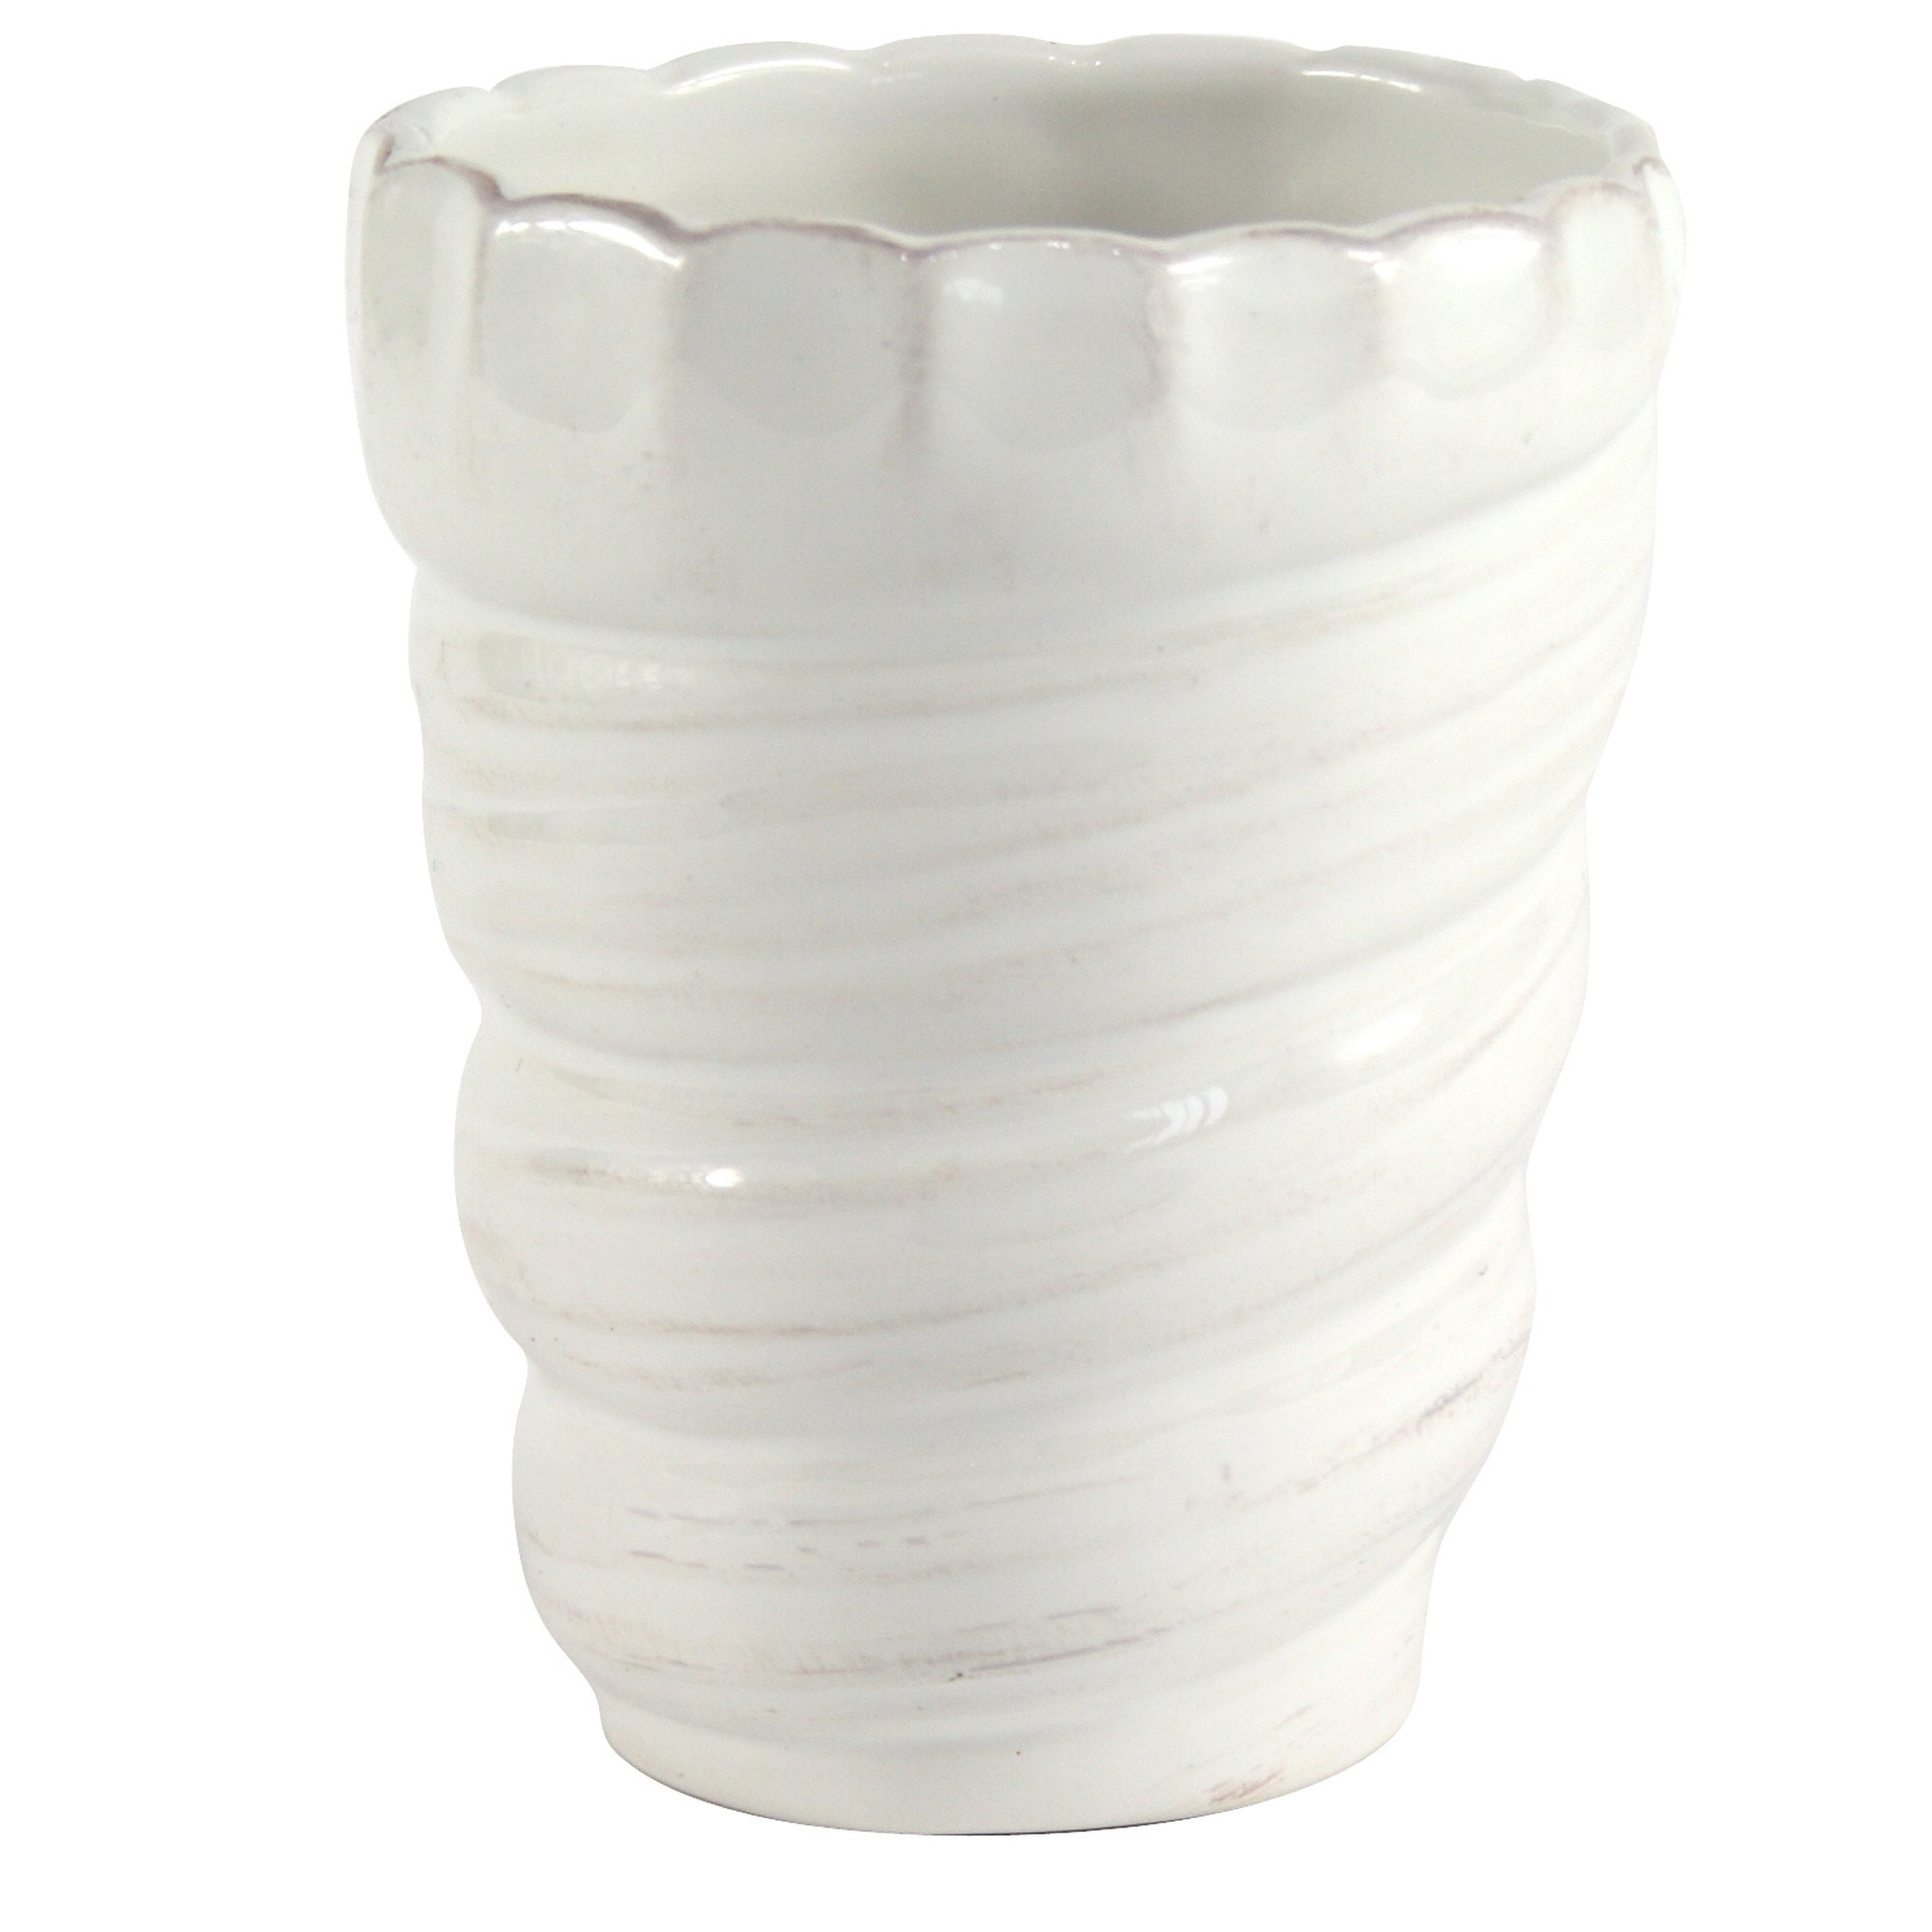 Shell Collection Ceramic Tumbler